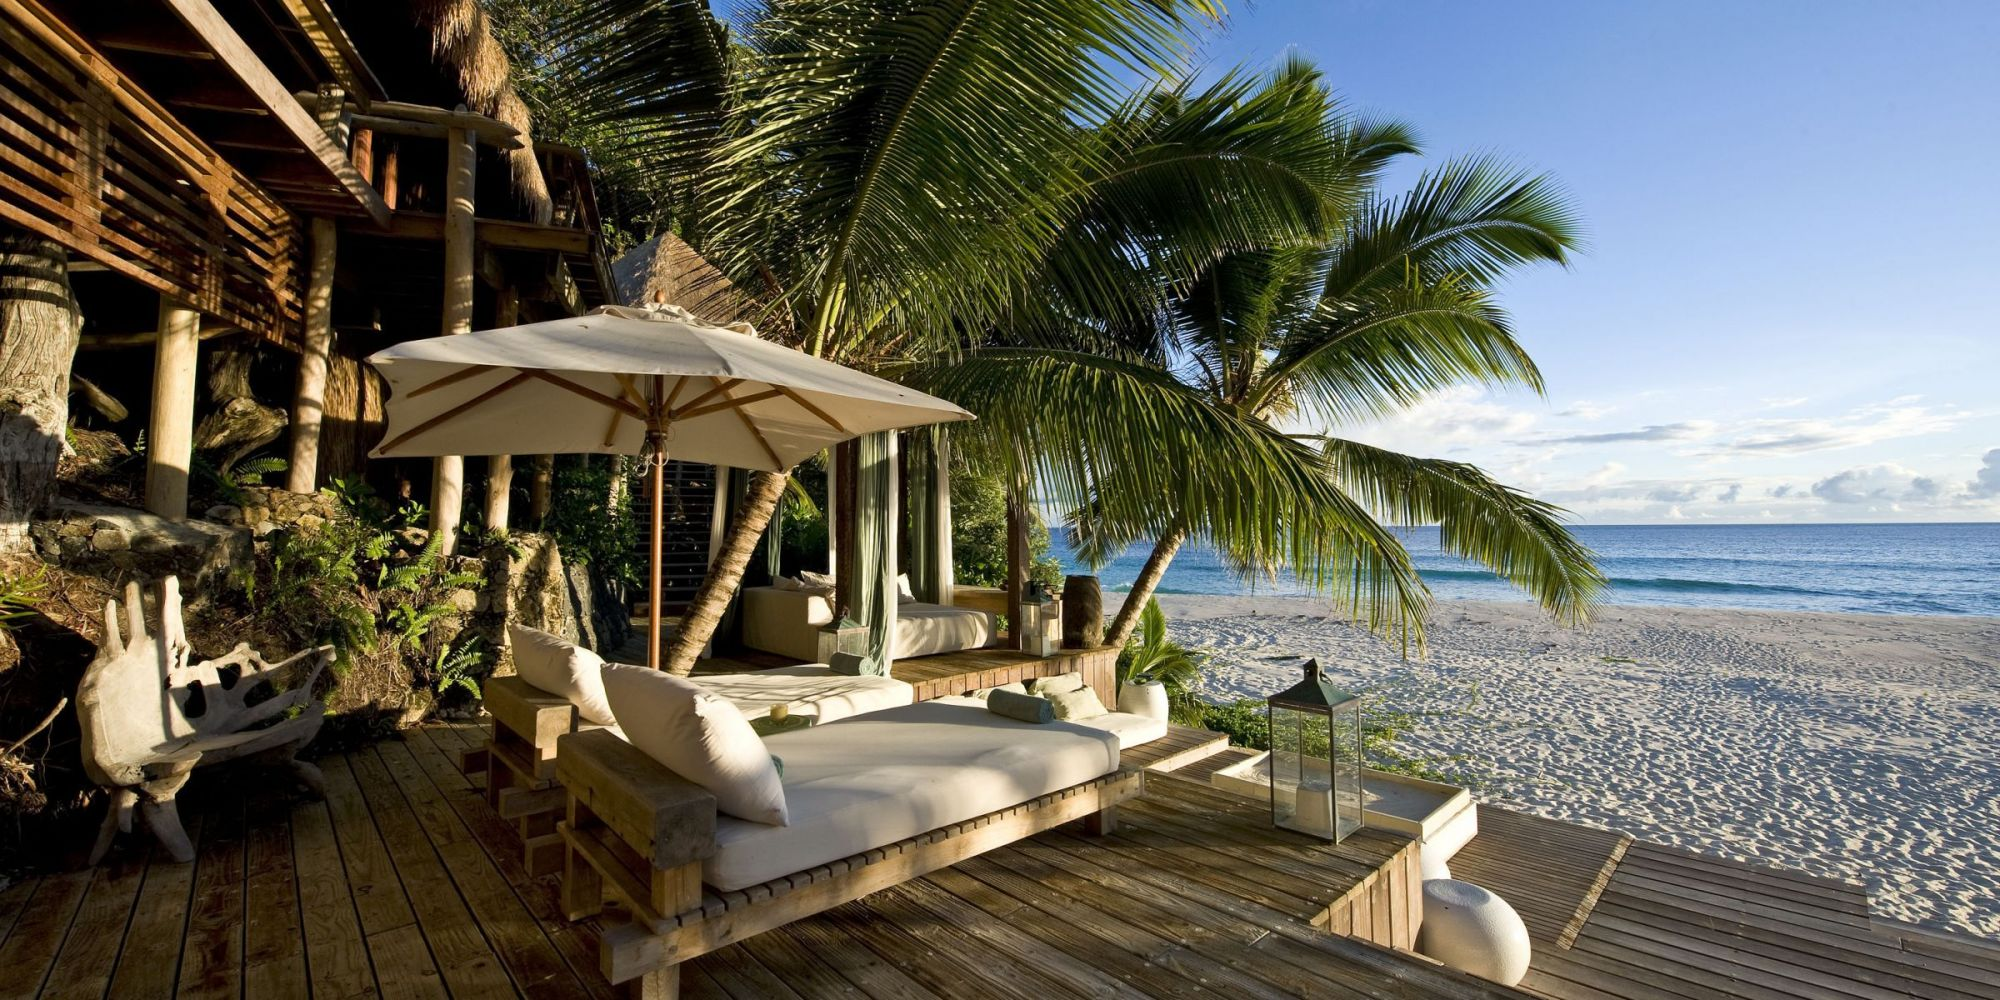 The World's Best Private Islands And Villas According To Travel Experts